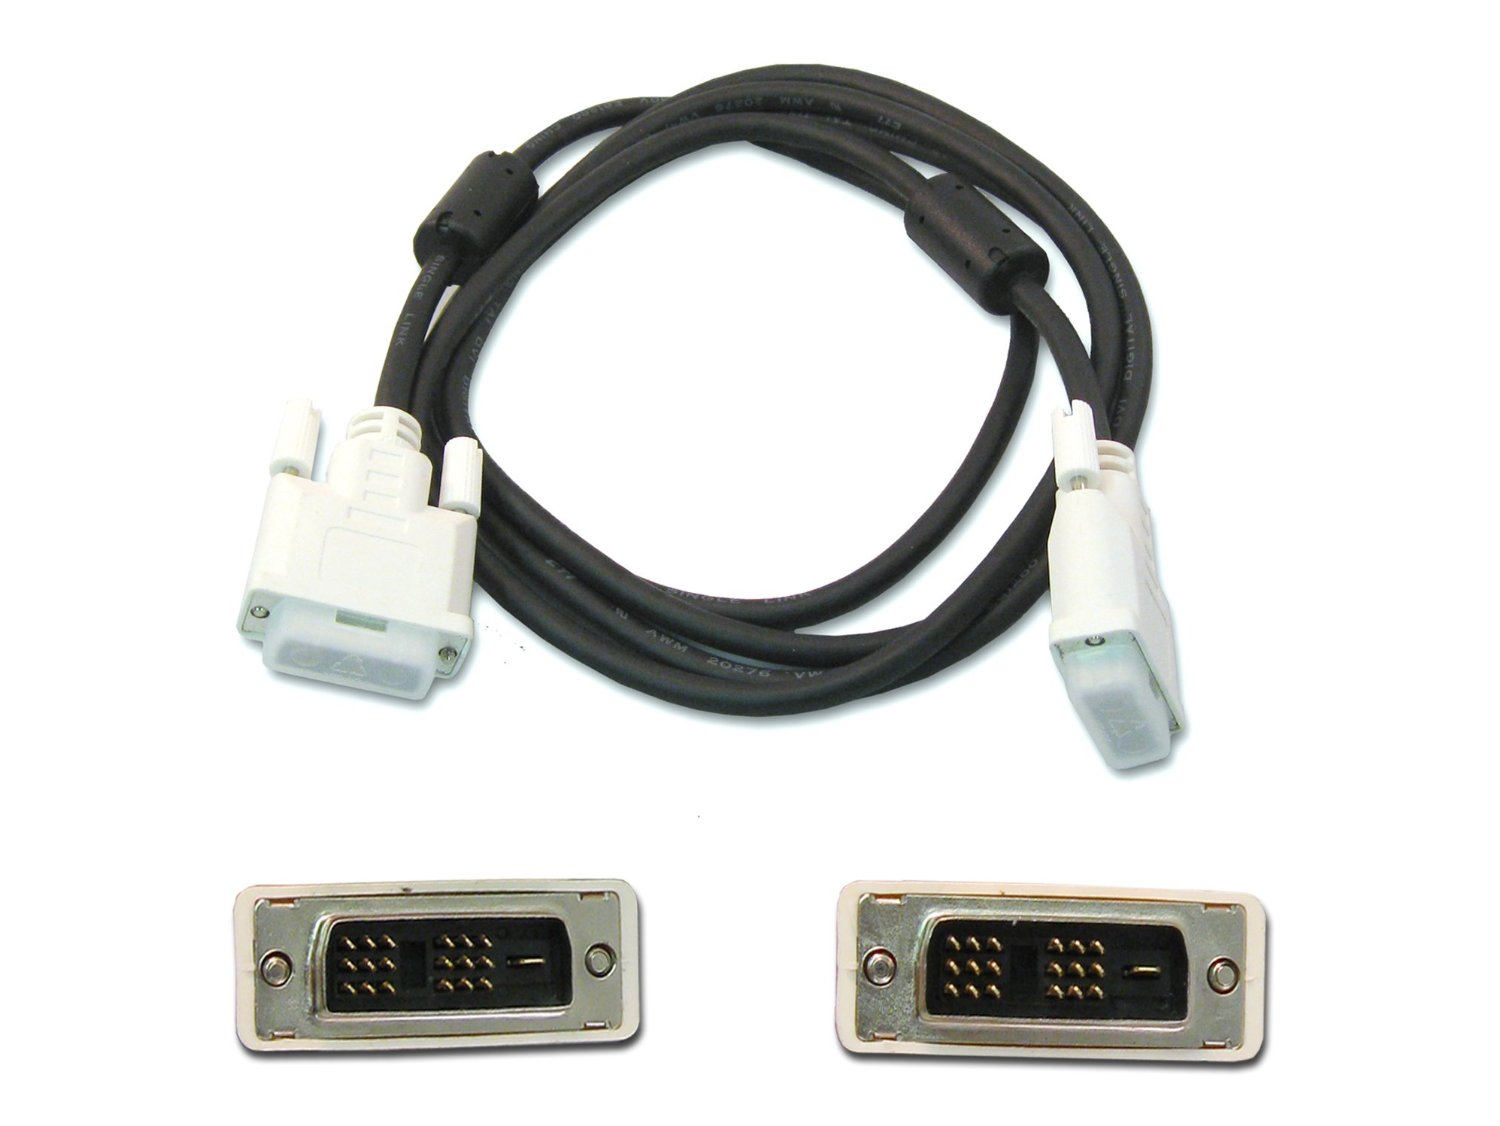 https://www.xgamertechnologies.com/images/products/DVI to DVI cable Male-Male.jpg